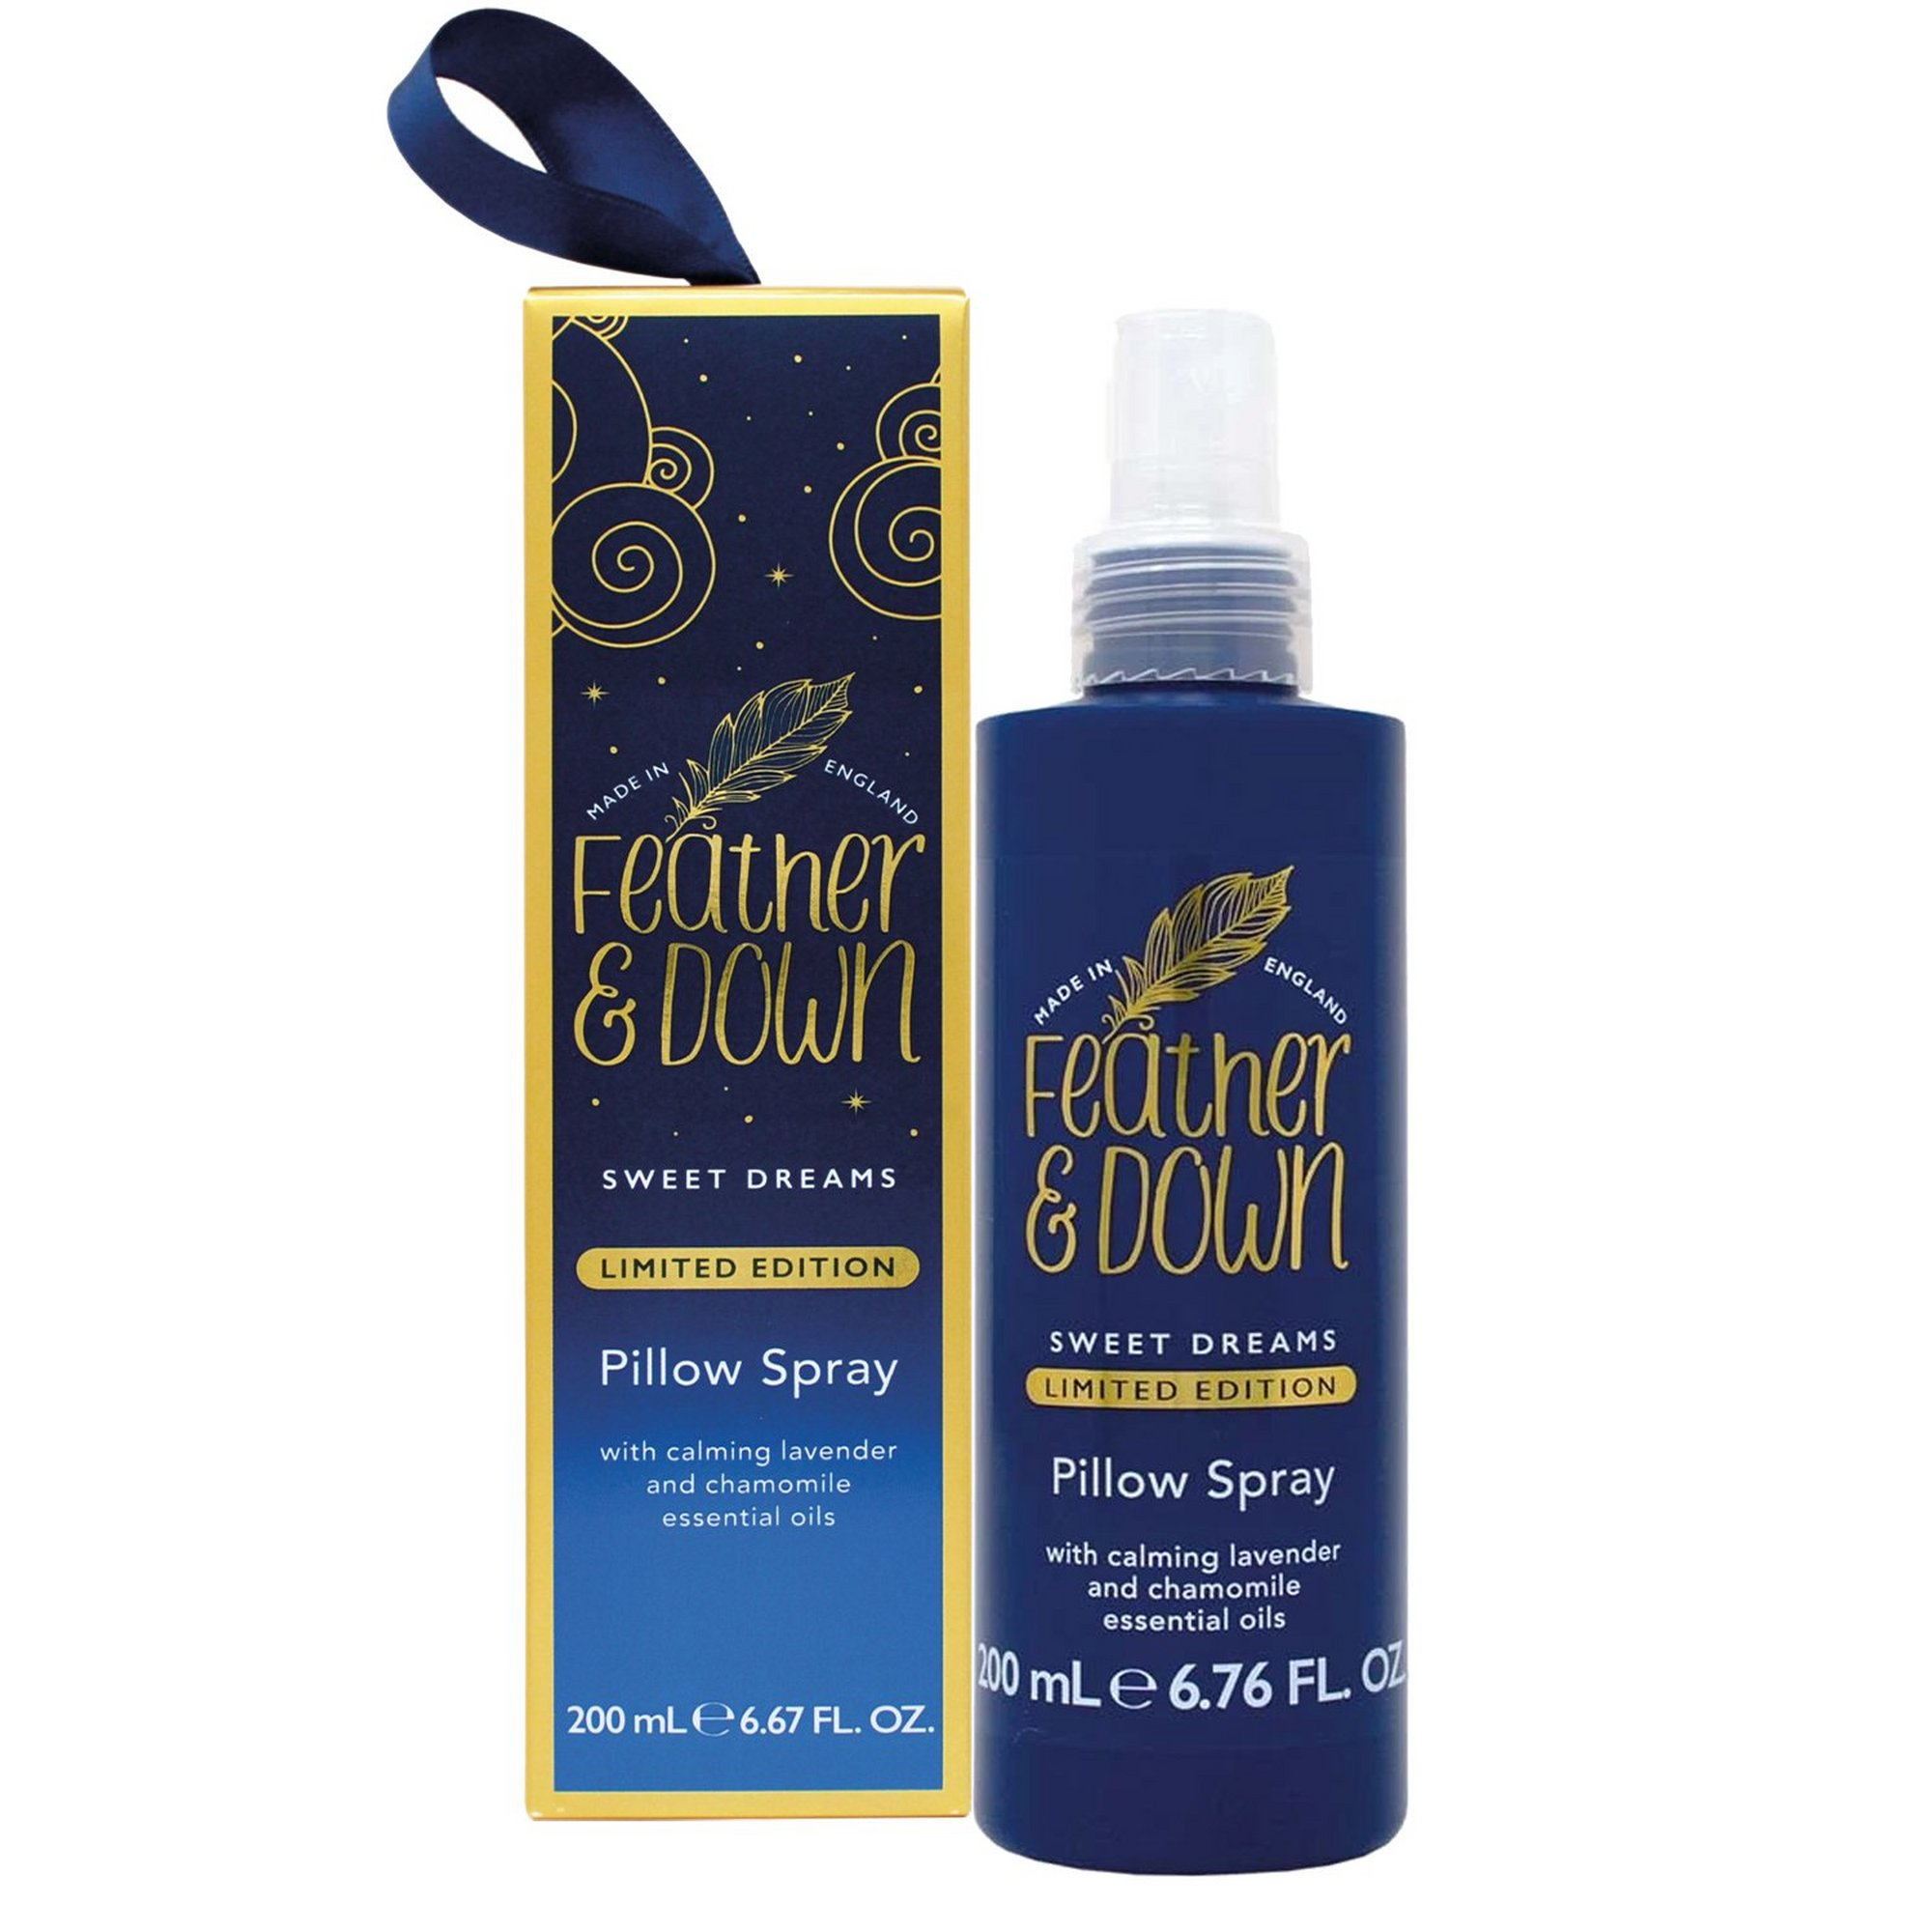 Image of Feather and Down Limited Edition 200ml Pillow Spray